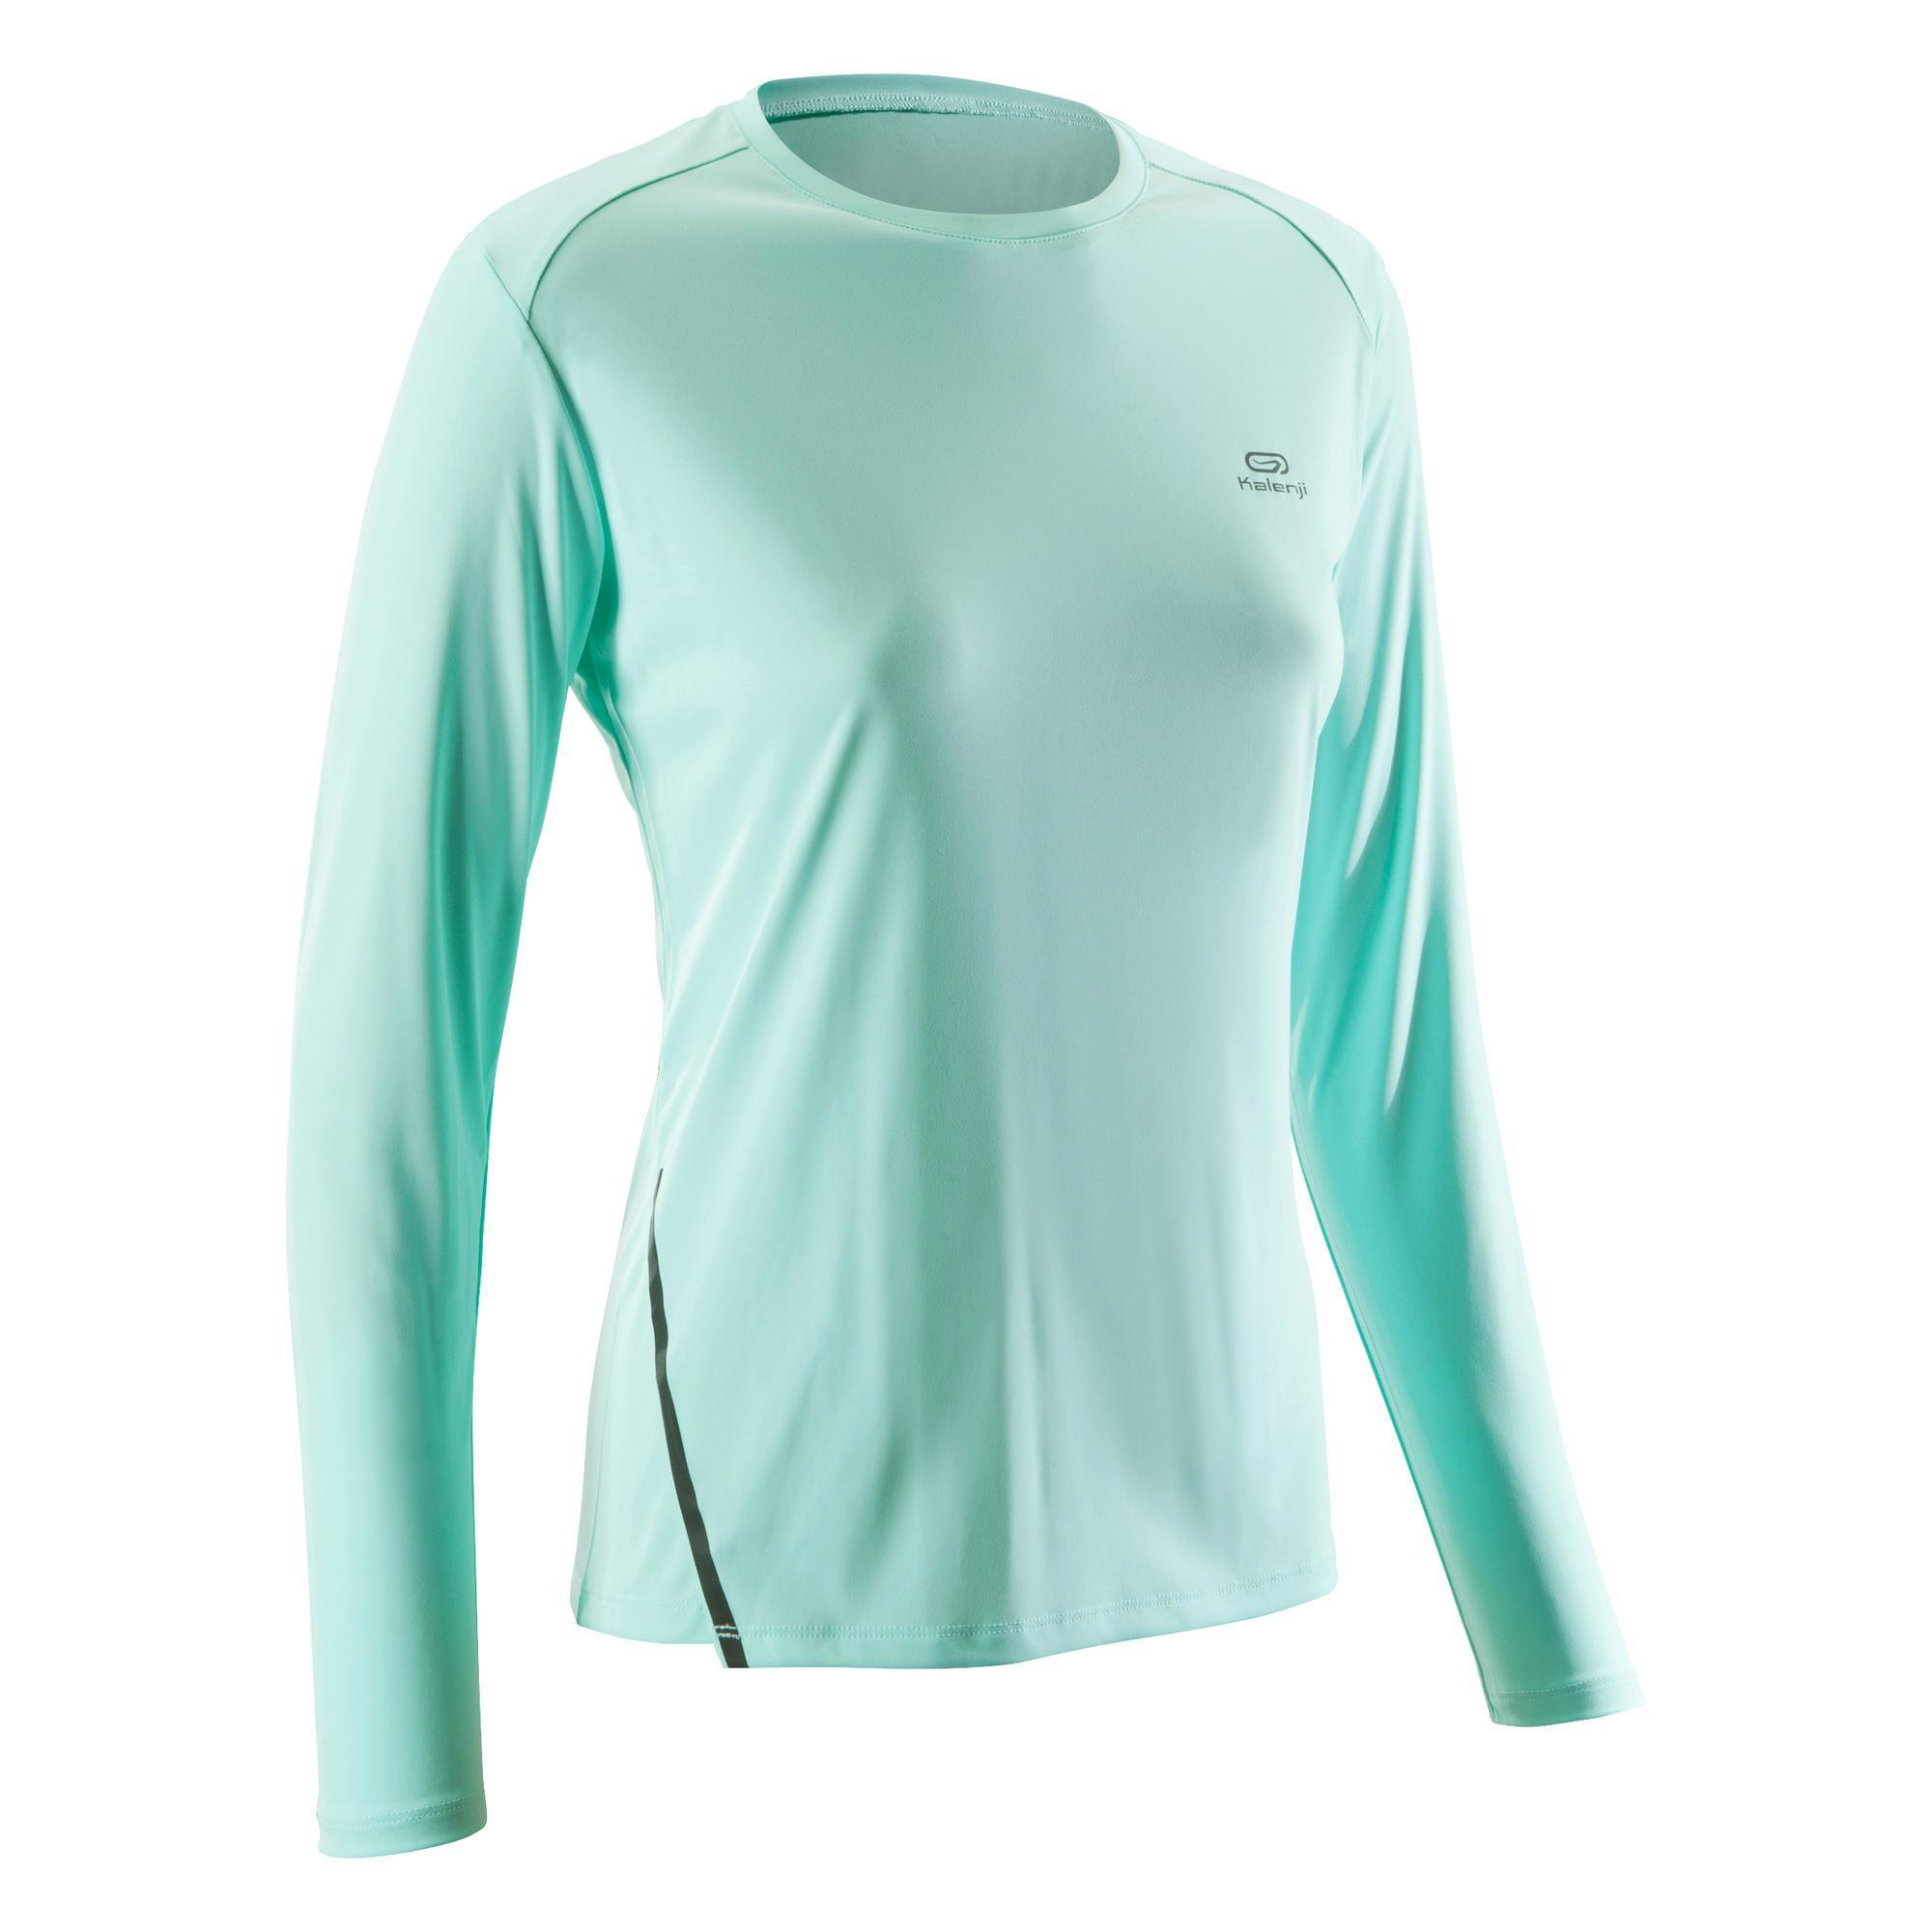 MAILLOT MANCHES LONGUES JOGGING FEMME RUN